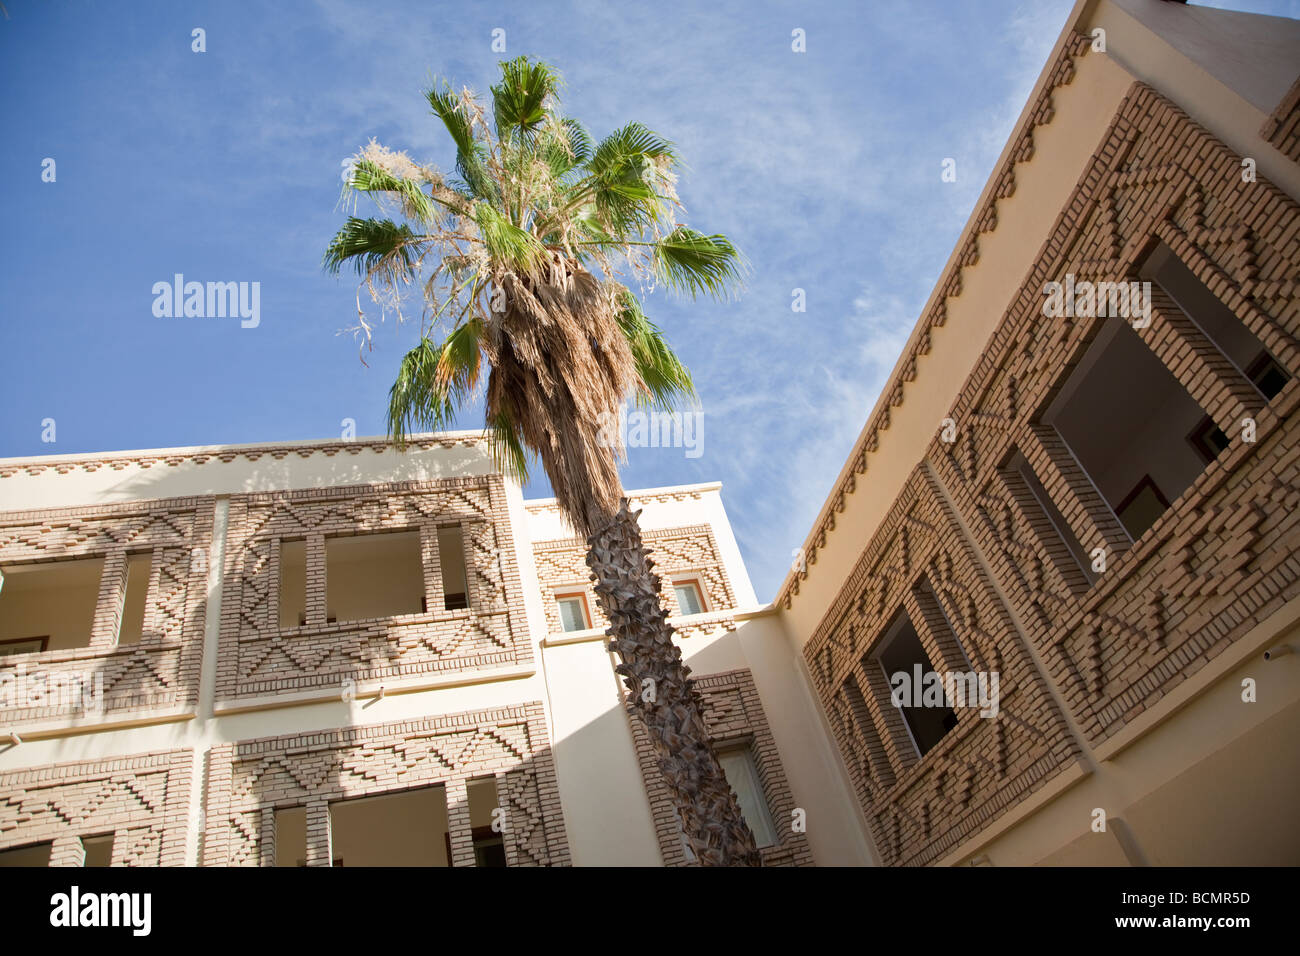 The respectable Hotel de l'Oasis in Tozeur, Tunisia displays the city's traditional and unique brickwork - Stock Image